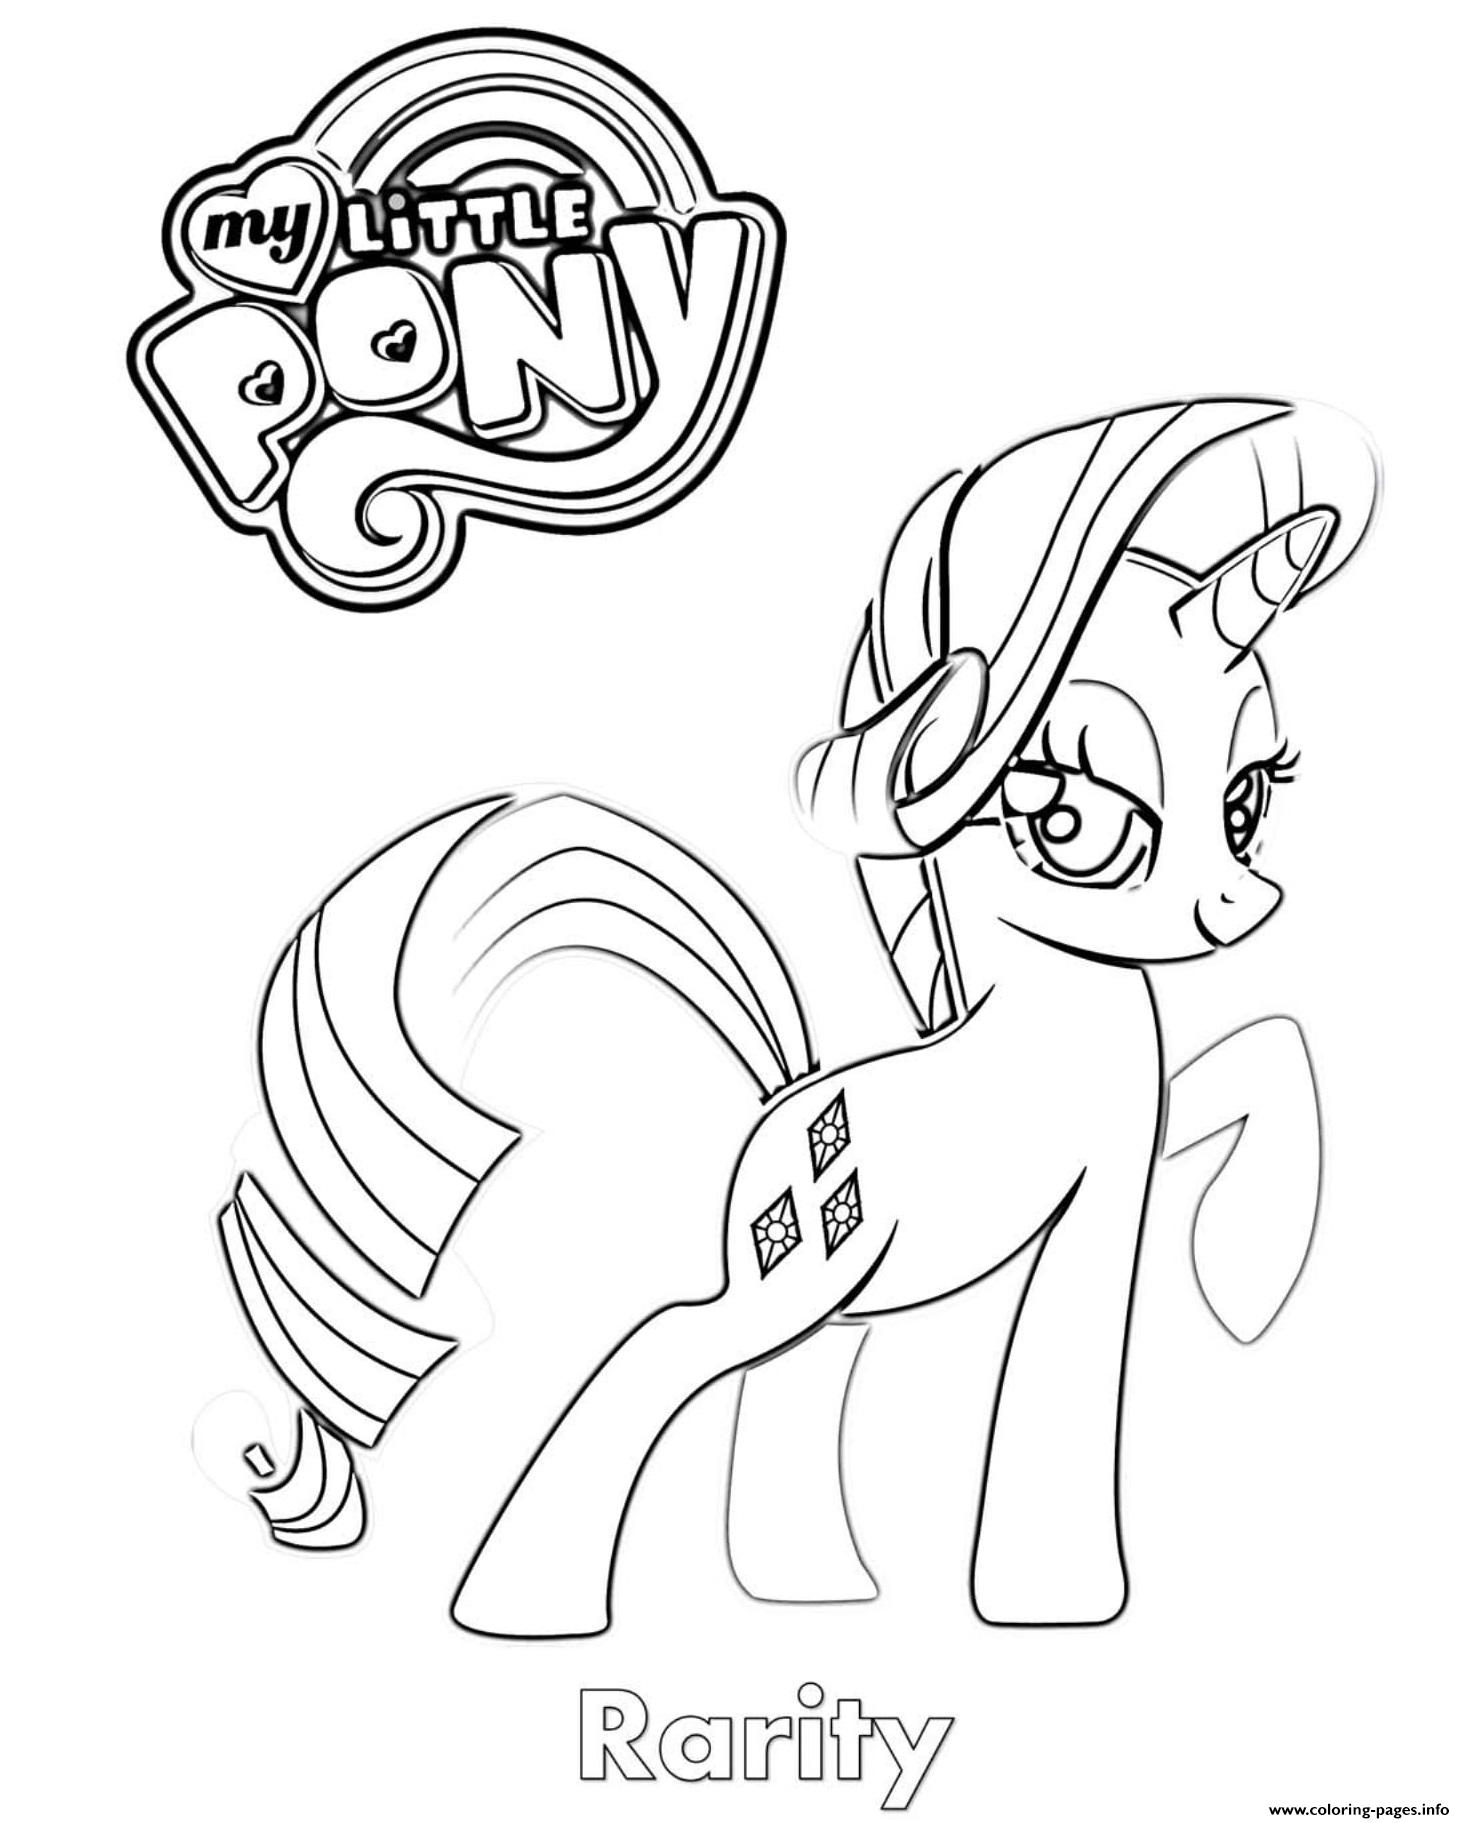 Rarity MLP coloring pages